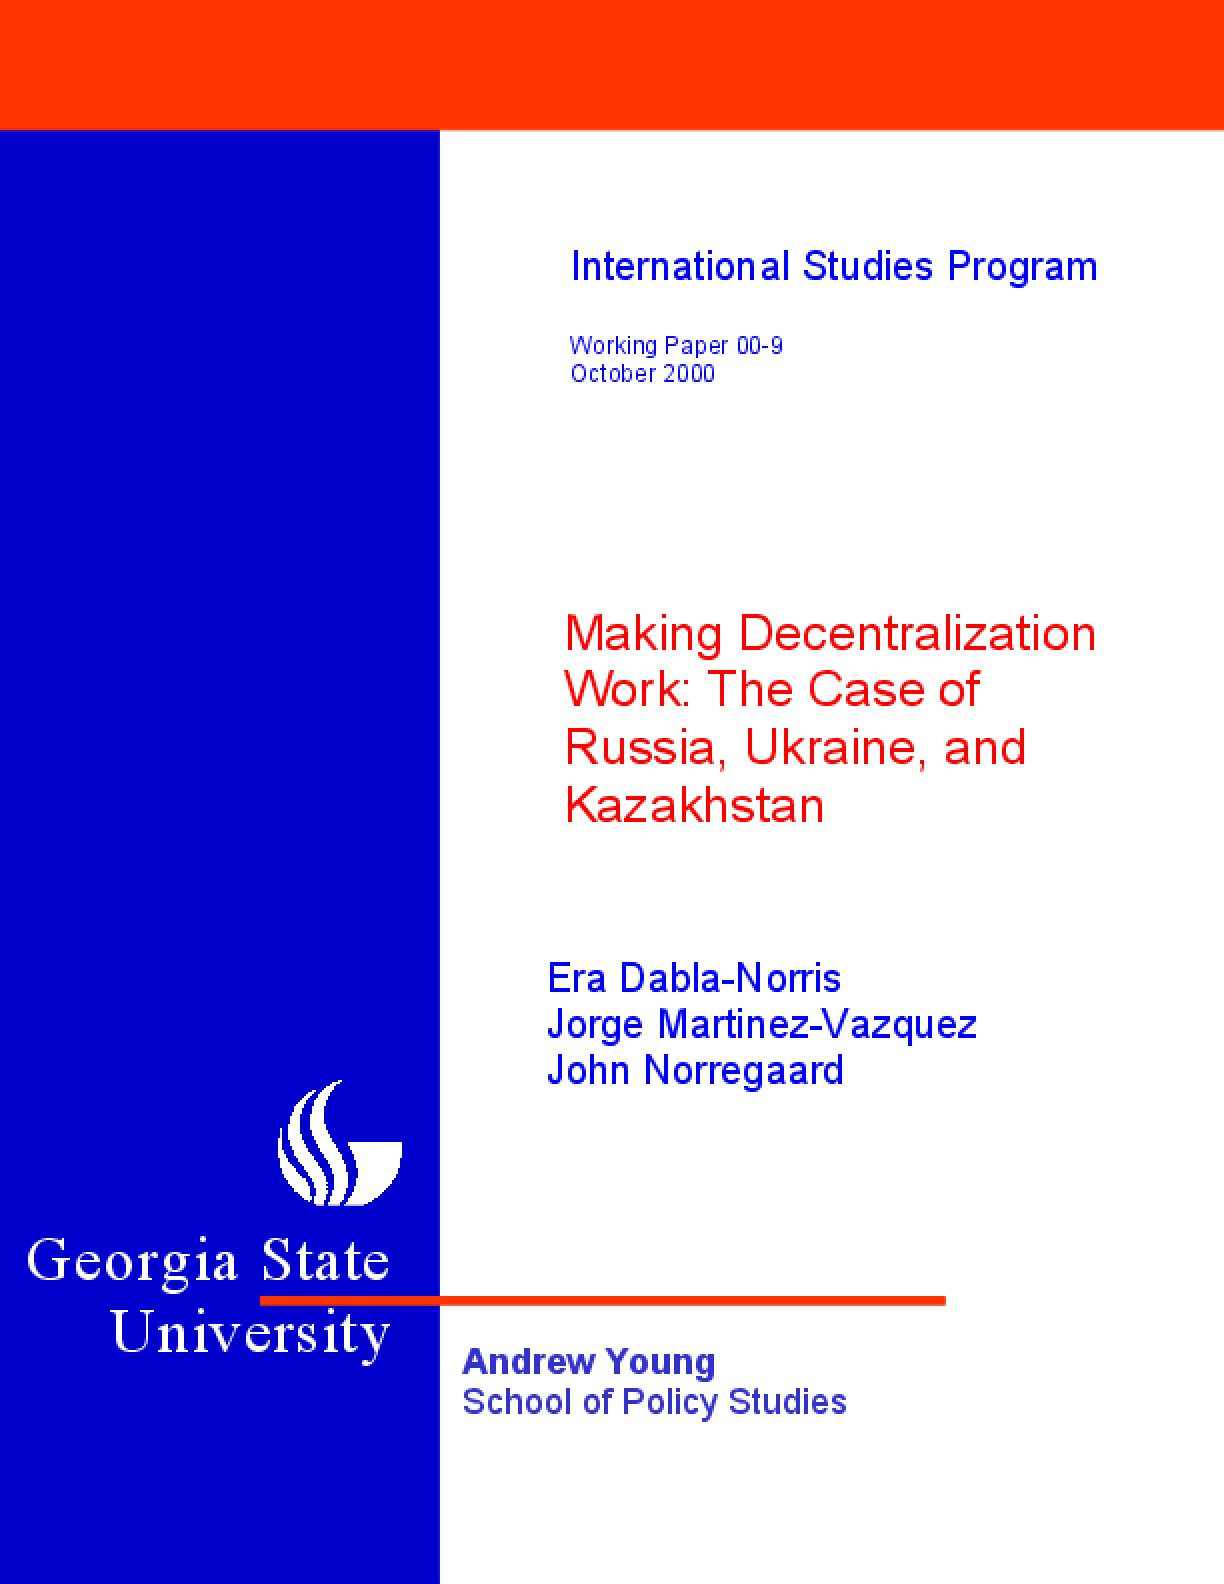 Making Decentralization Work: the Case of Russia, Ukraine, and Kazakhstan